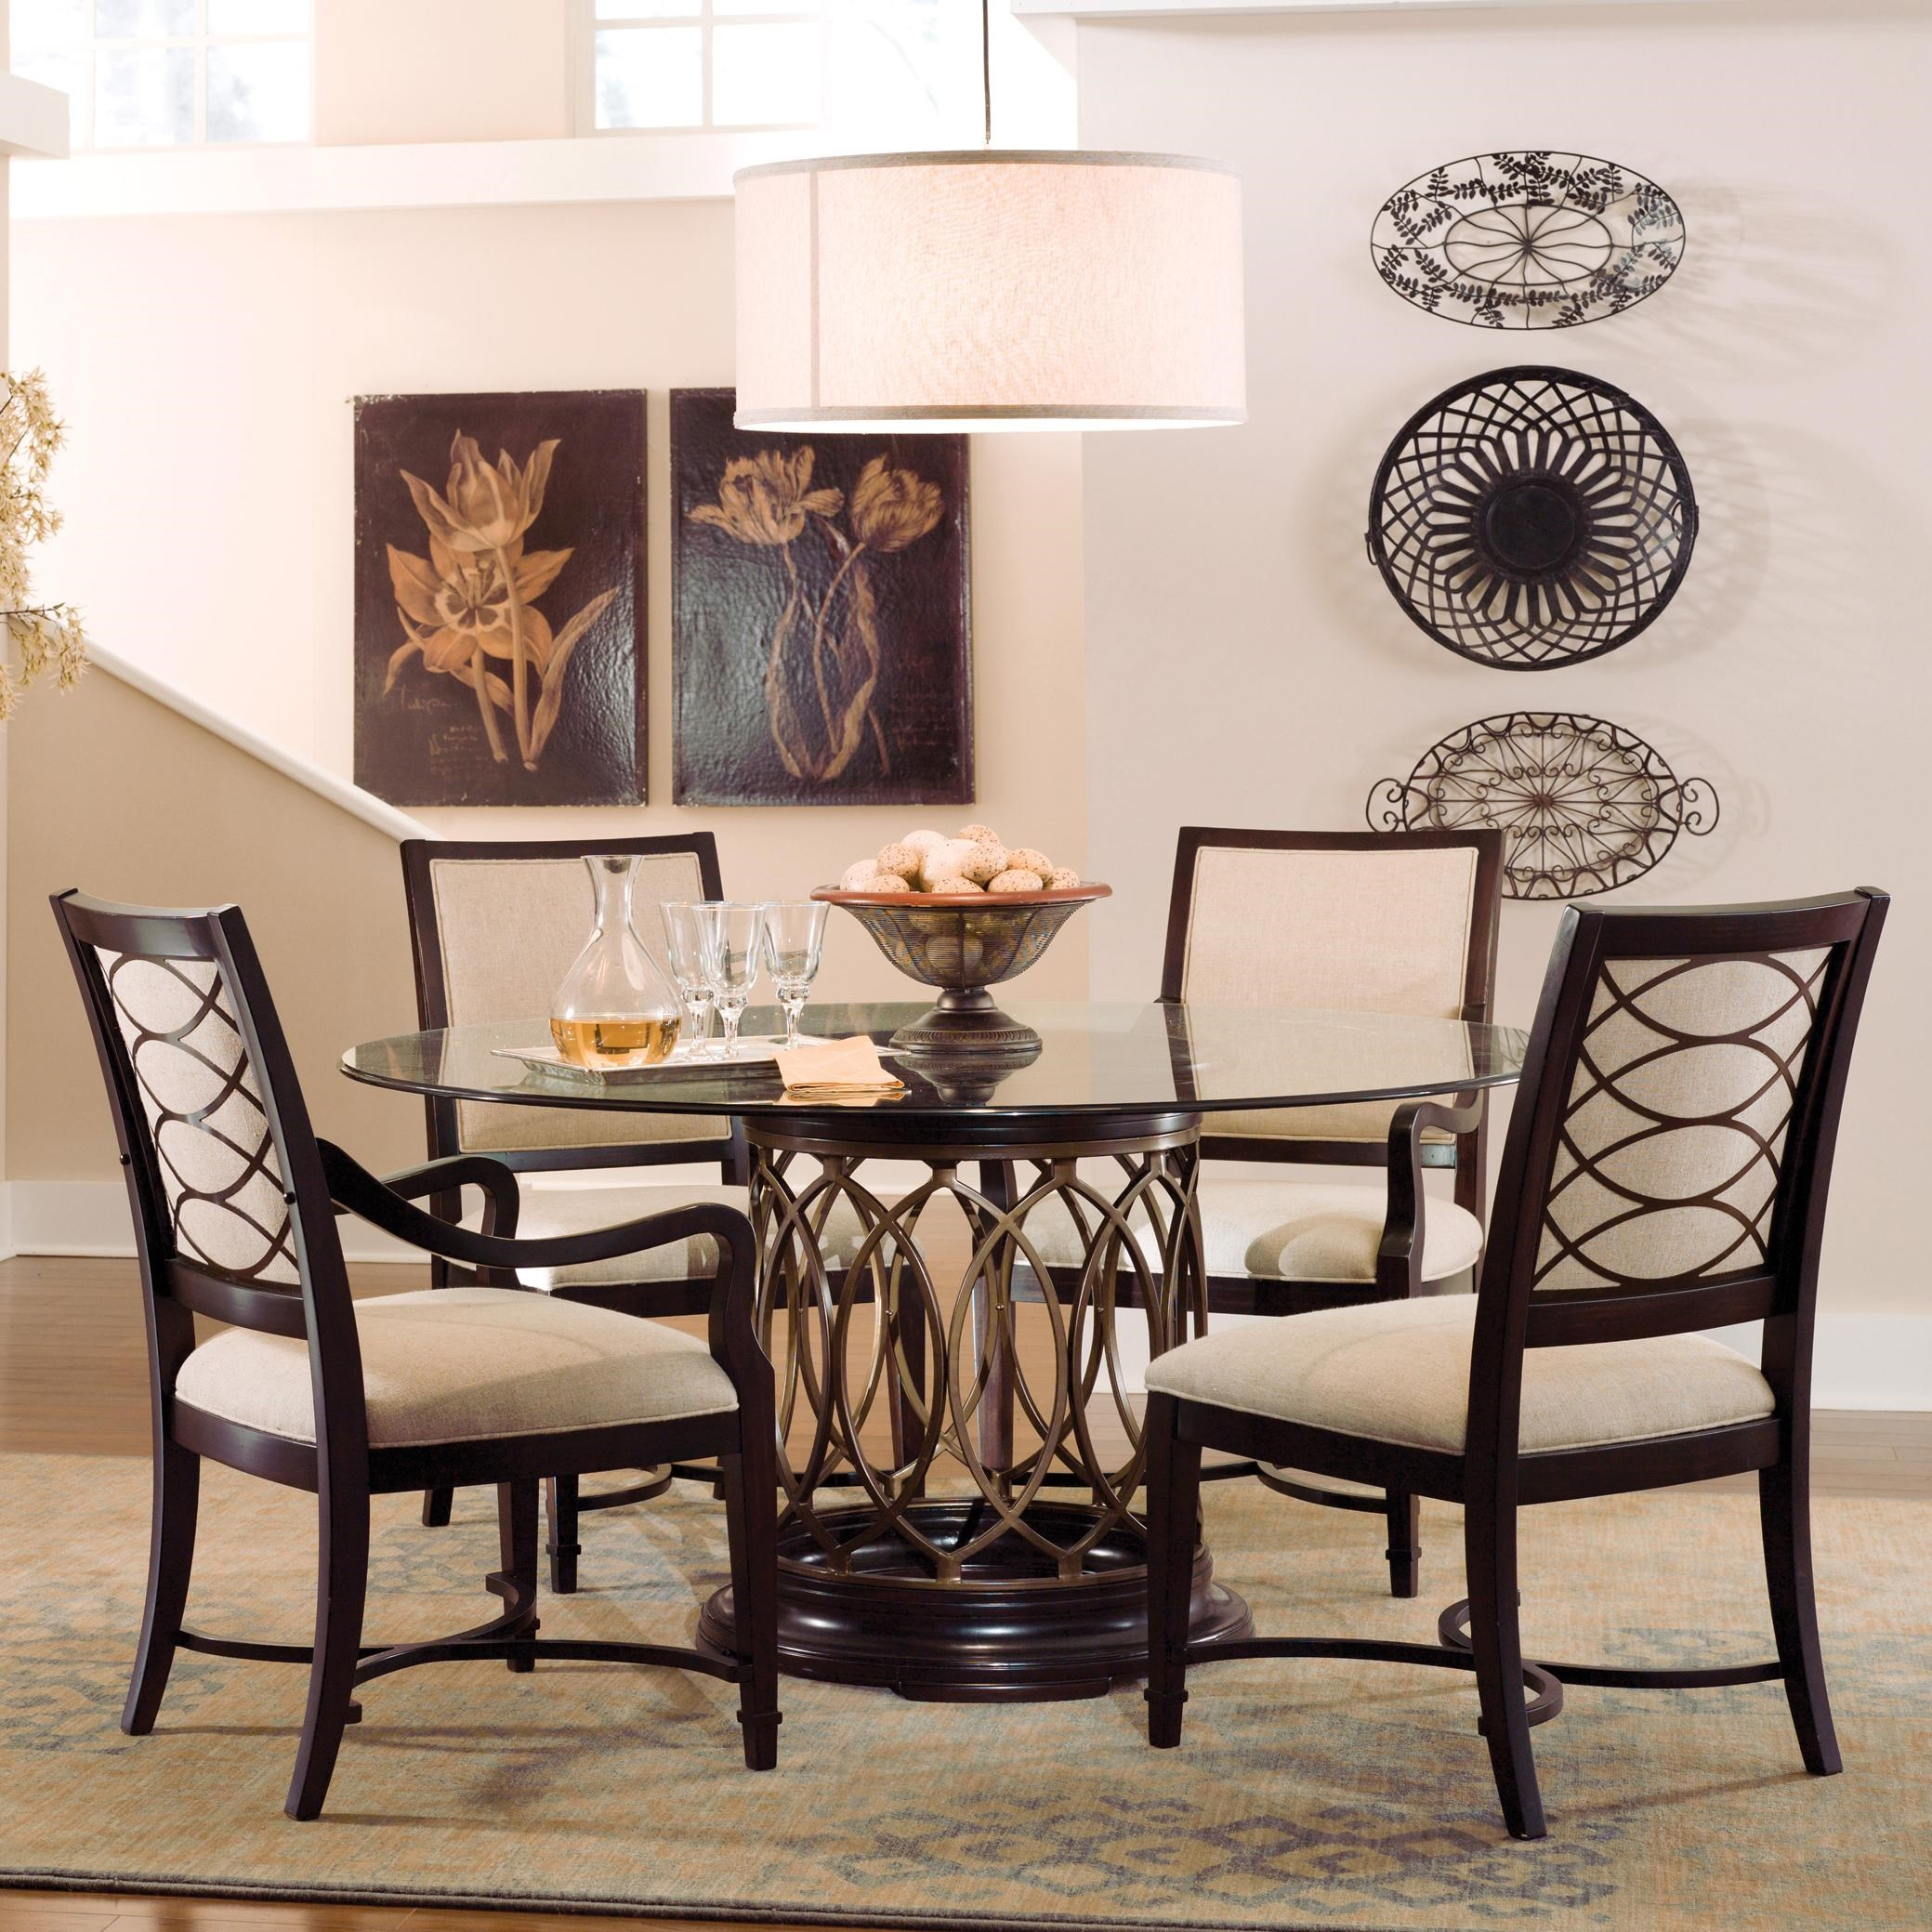 Round Glass Top Dining Table A R T Furniture Inc Intrigue Round Glass Top Dining Table With